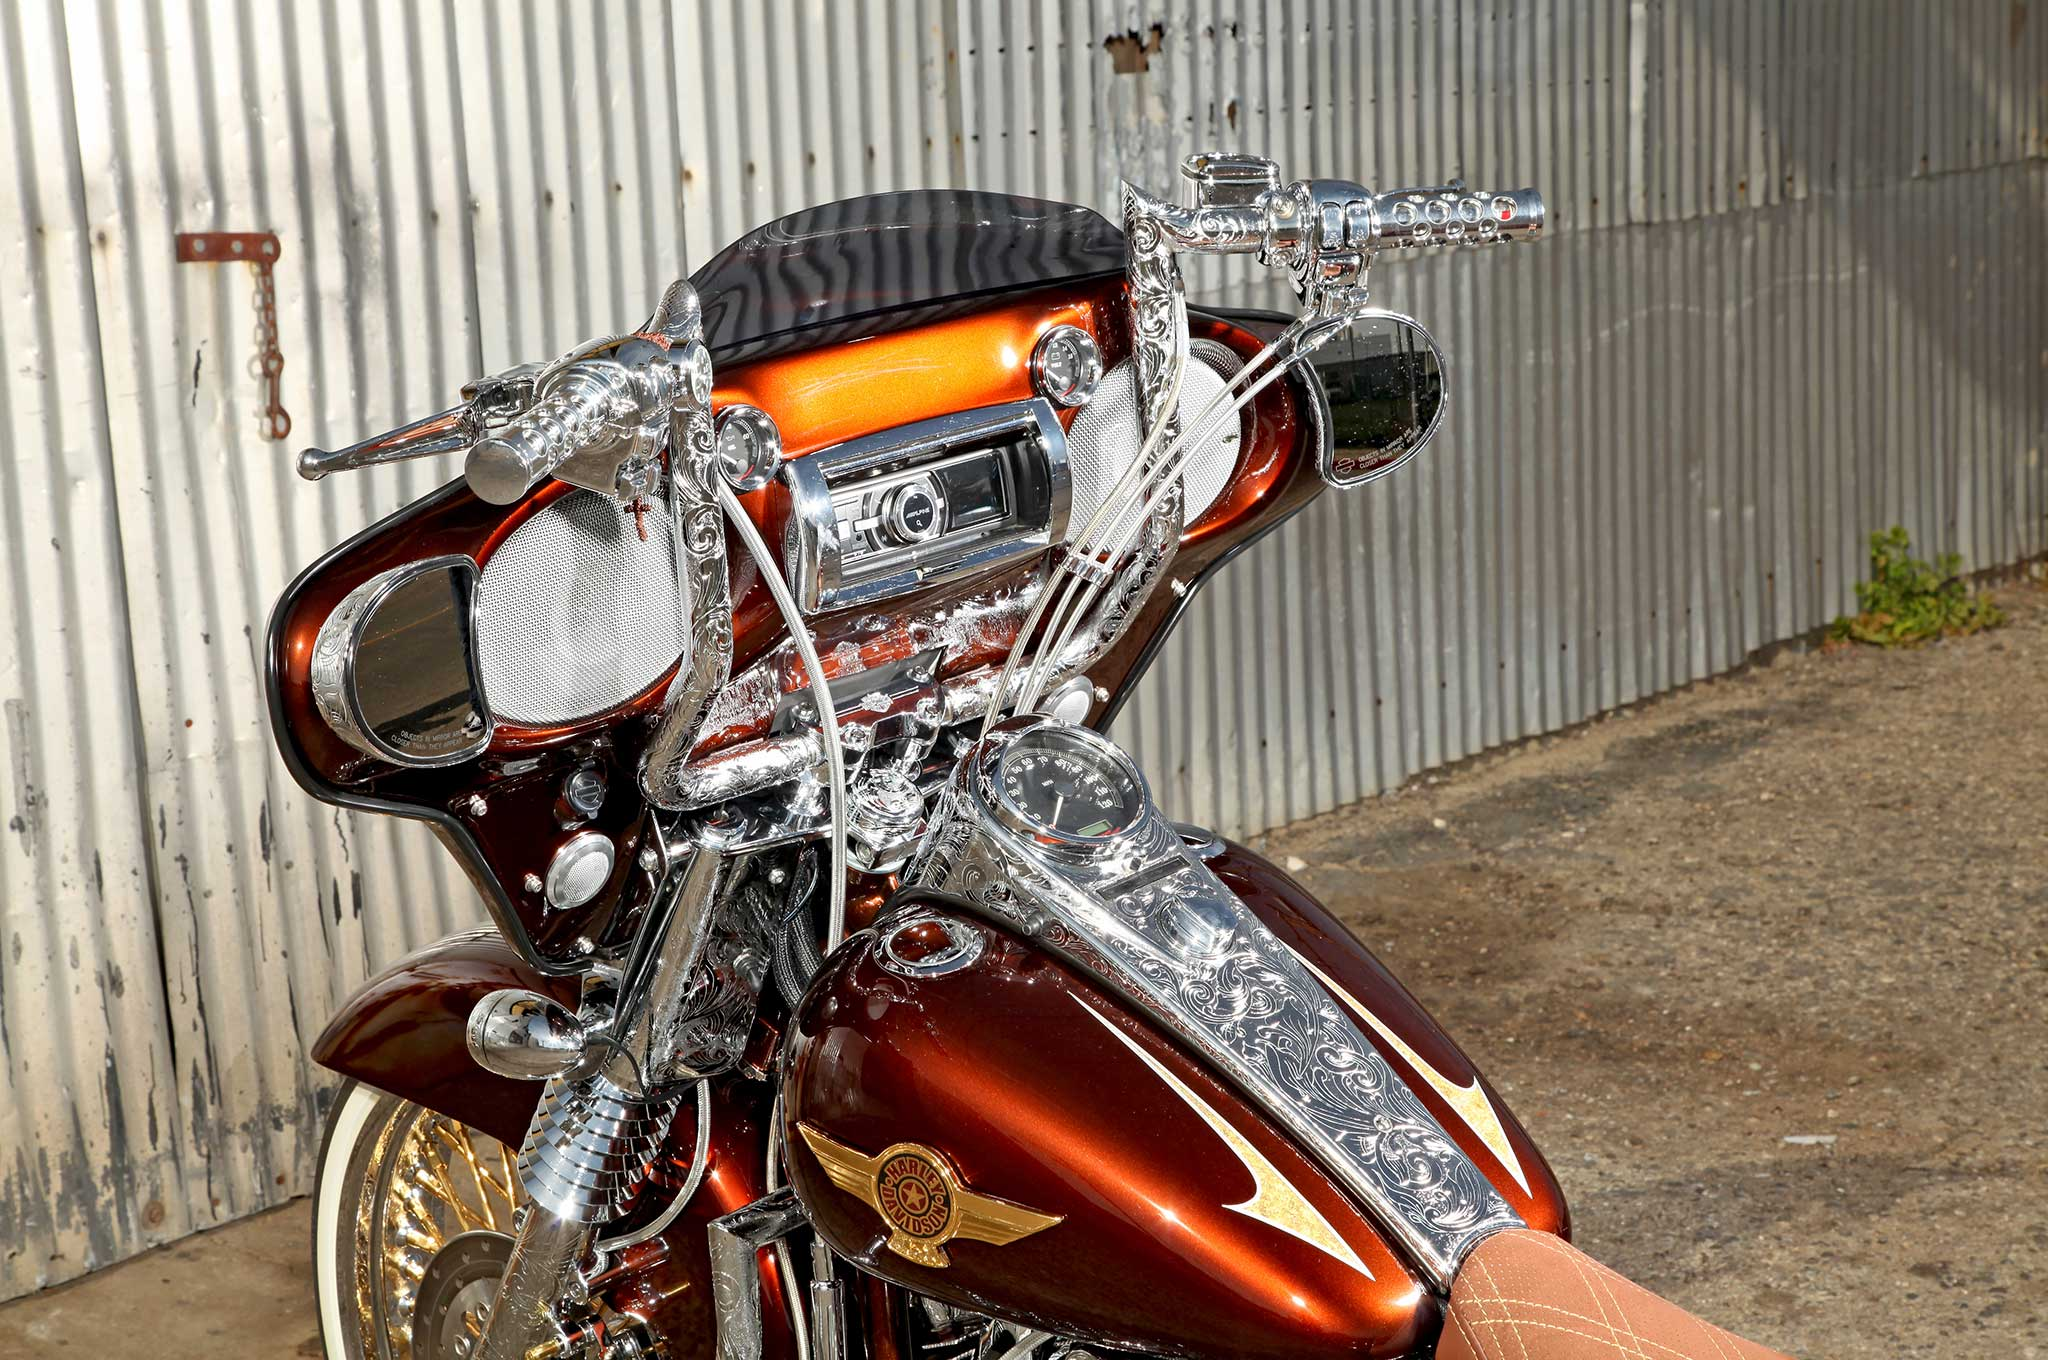 2005 Harley-Davidson Fat Boy - Heritage With Style - Lowrider